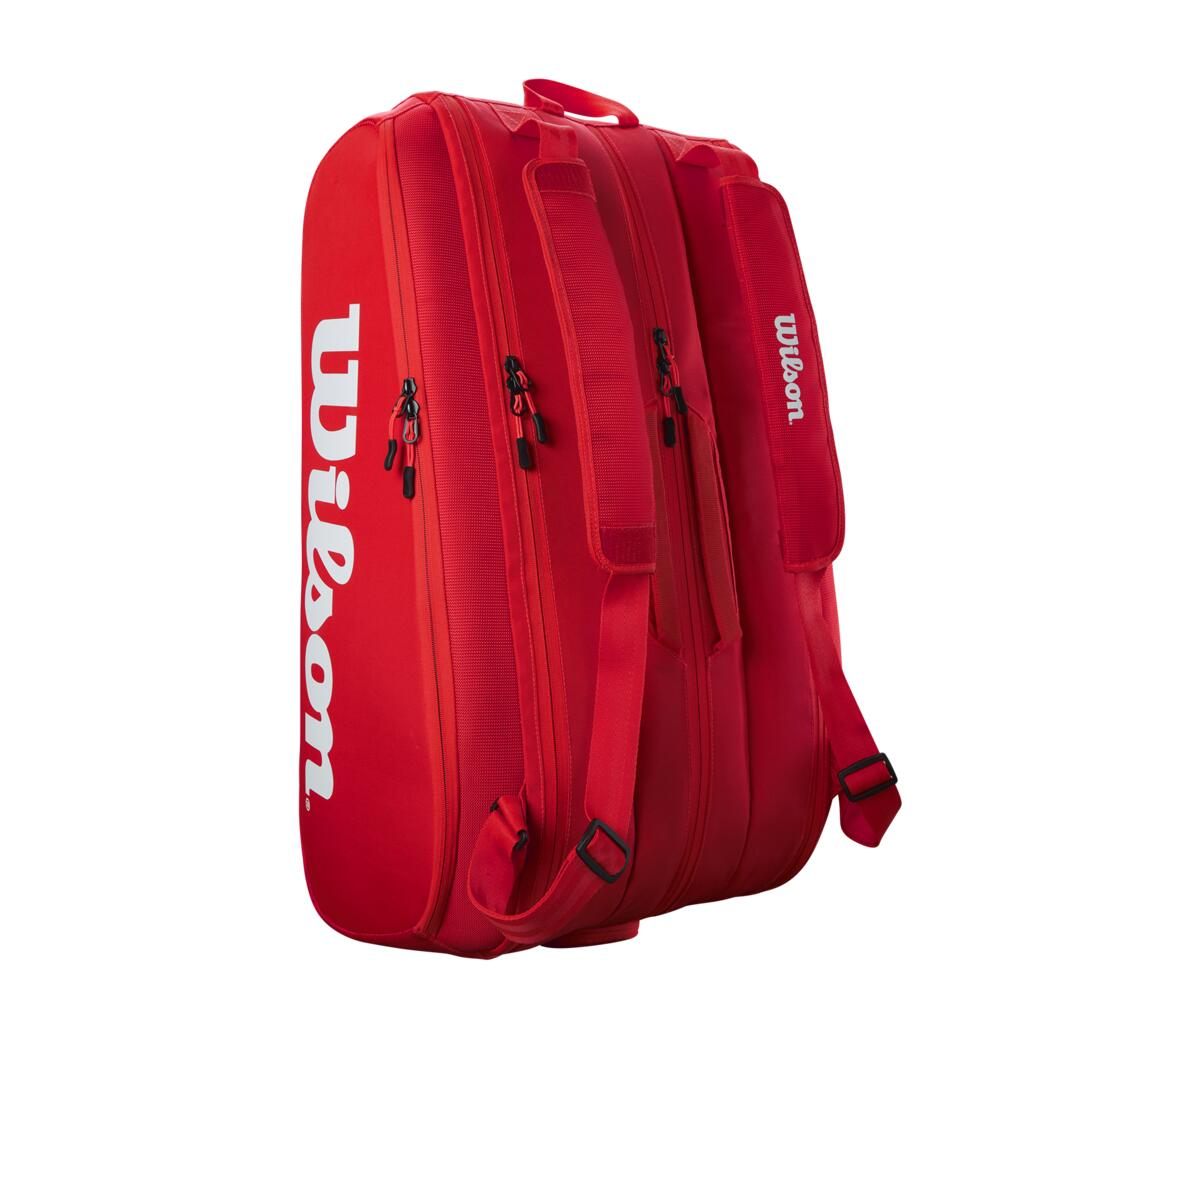 Wilson Super Tour 15 Pack Tennis Bag Red/White 2021